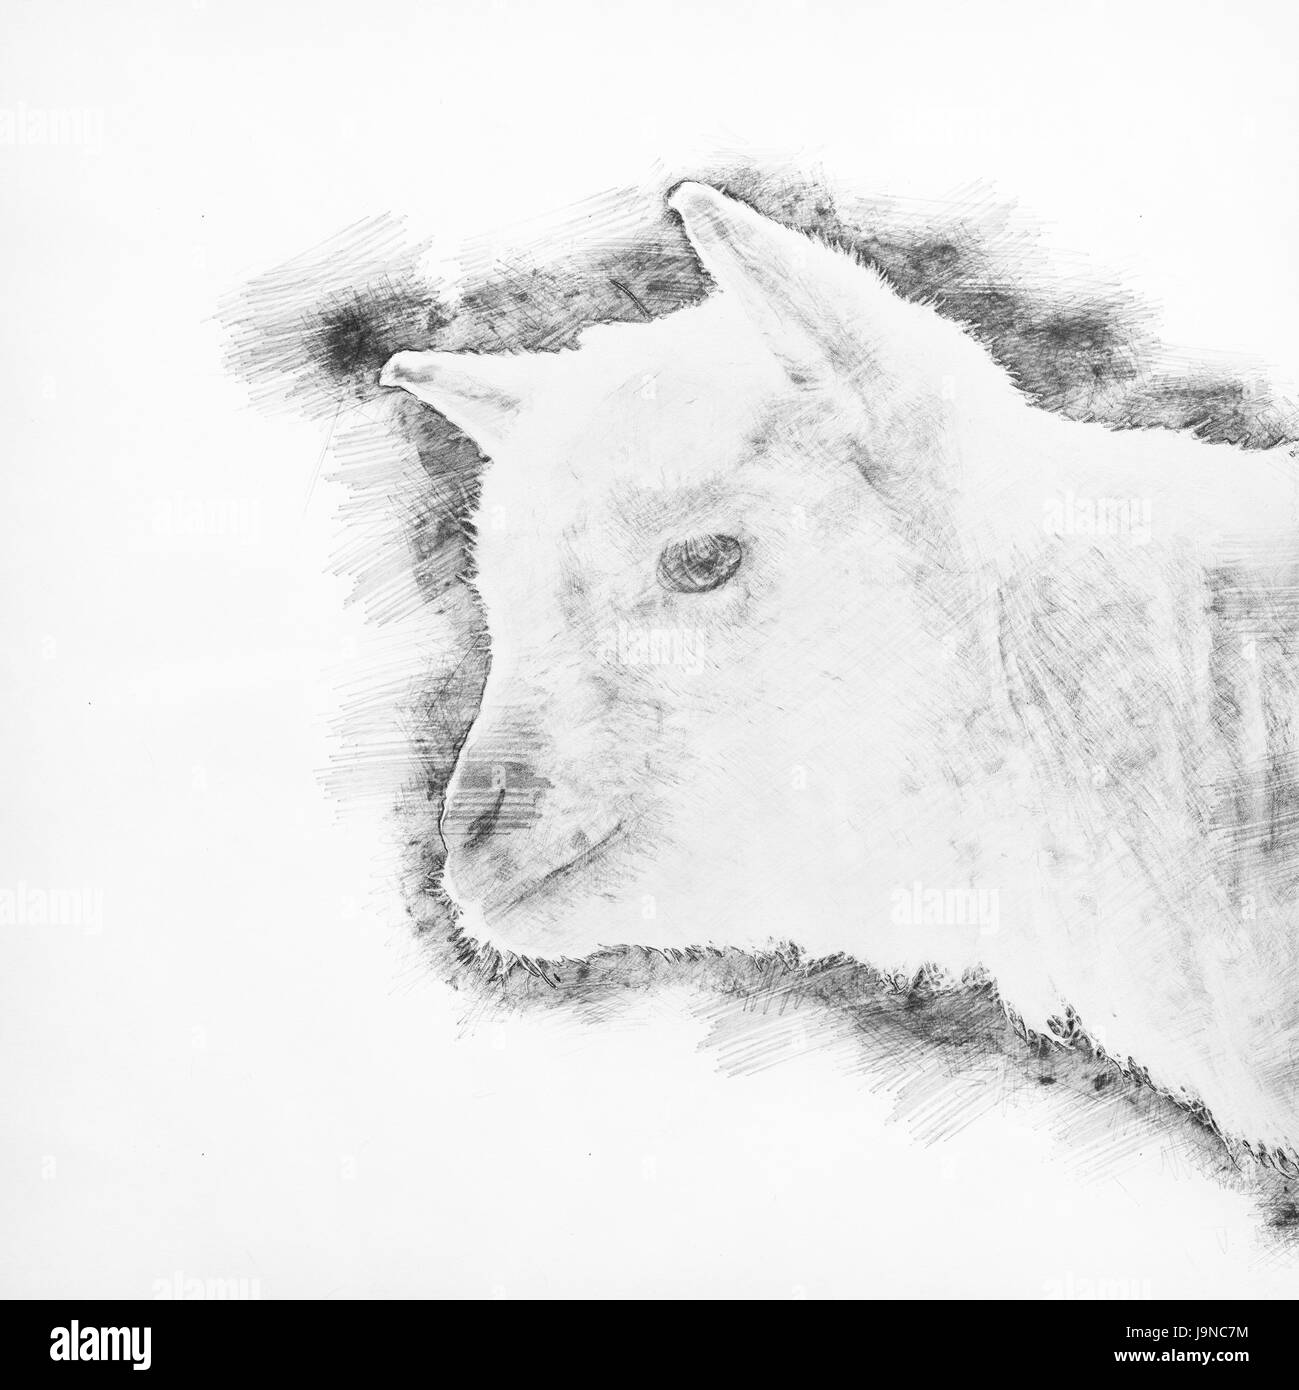 line drawing -head of a white goat against a blue background - Stock Image